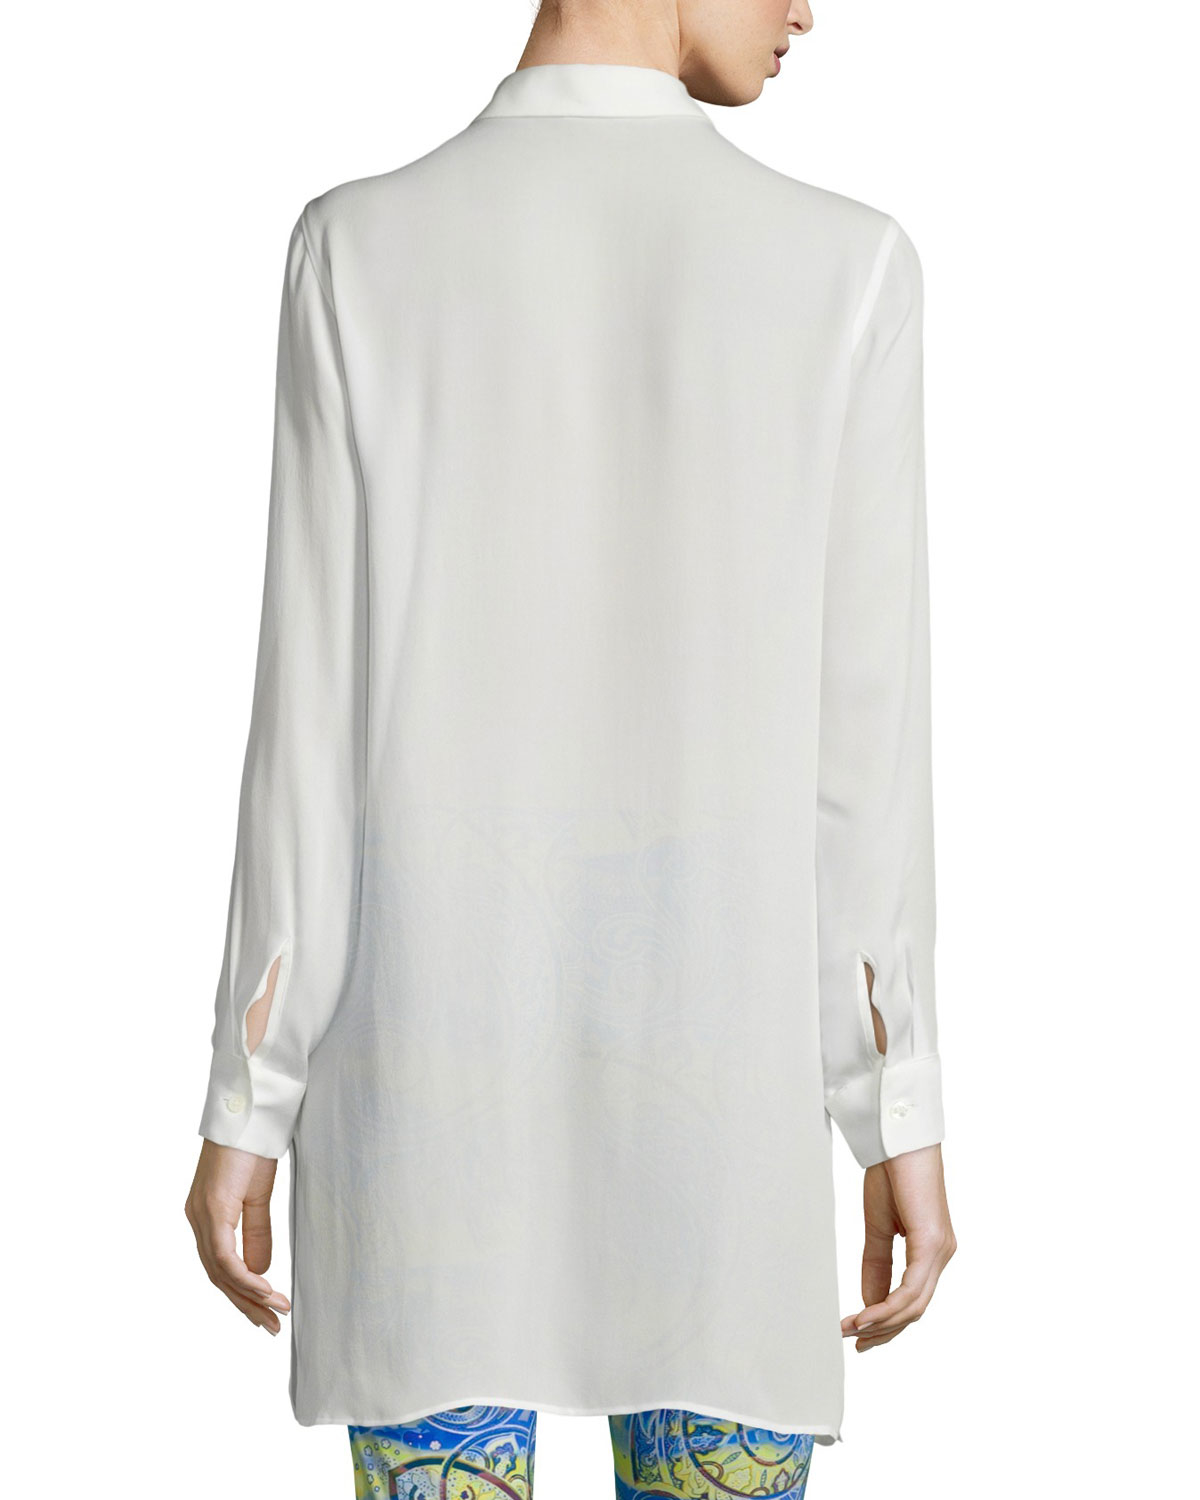 Tunic Long Sleeve Shirts: imaginary-7mbh1j.cf - Your Online Tops Store! Get 5% in rewards with Club O! Coupon Activated! Skip to main content FREE Shipping & Easy Returns* Women's Wispy White Tunic Set - Long Roll-Tab Sleeves Tunic Top & Lace Tank. 5 Reviews. SALE. More Options.